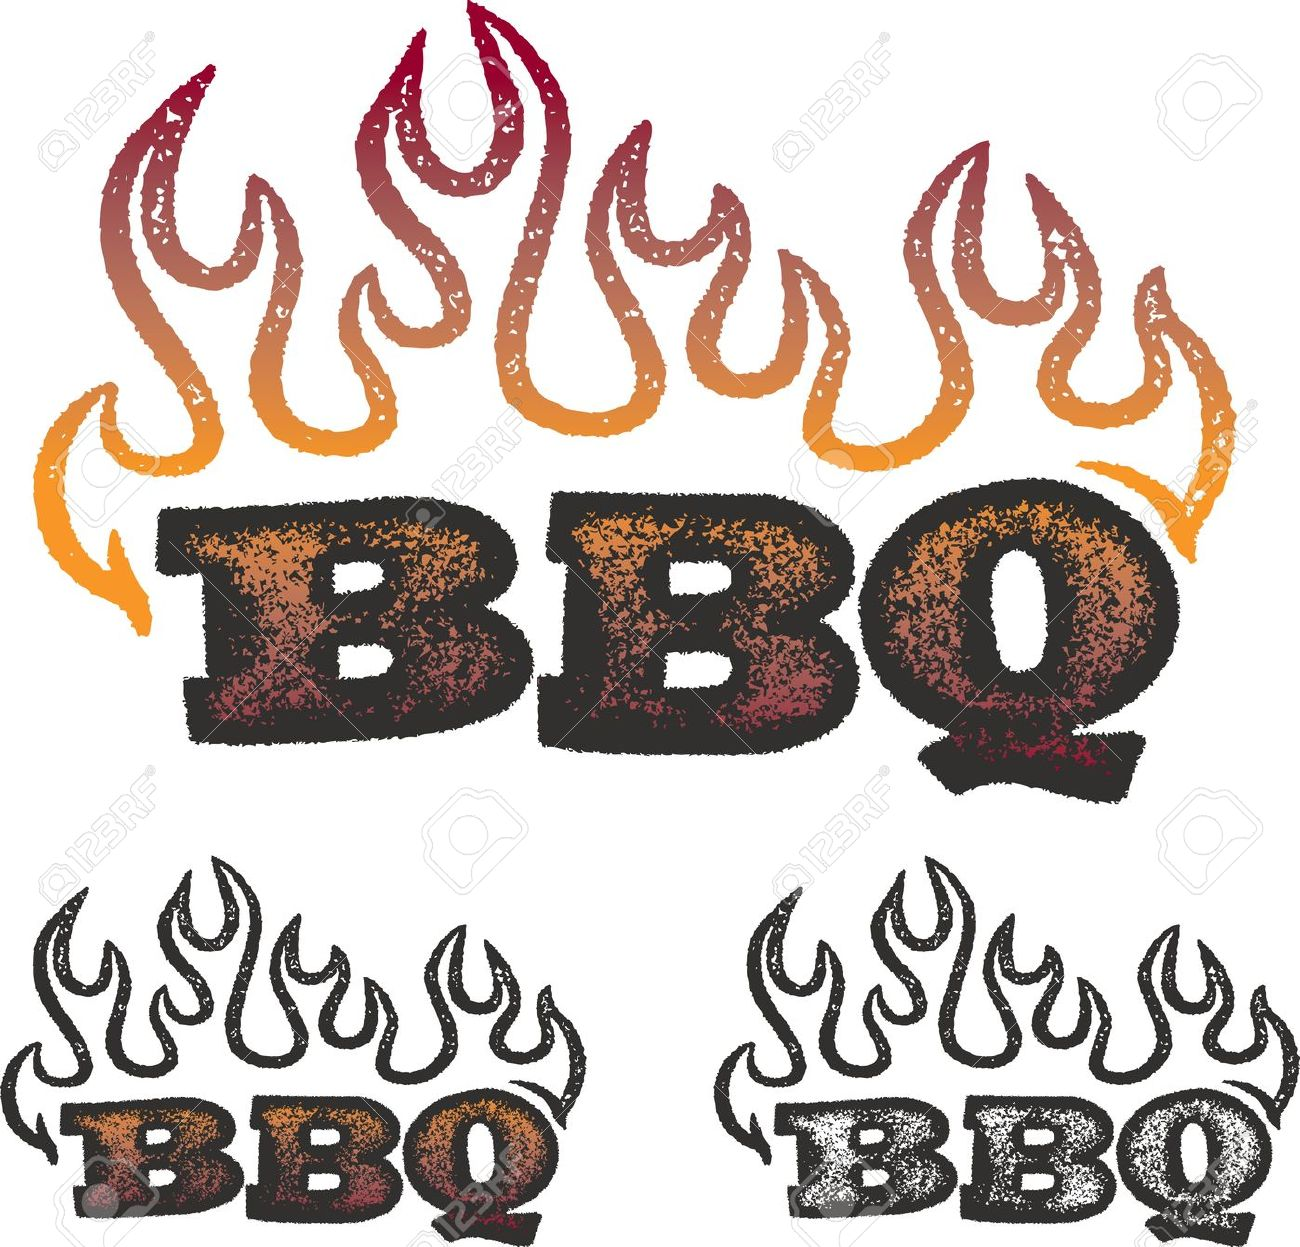 Best Bbq Clipart #5266 - Clipartion.com